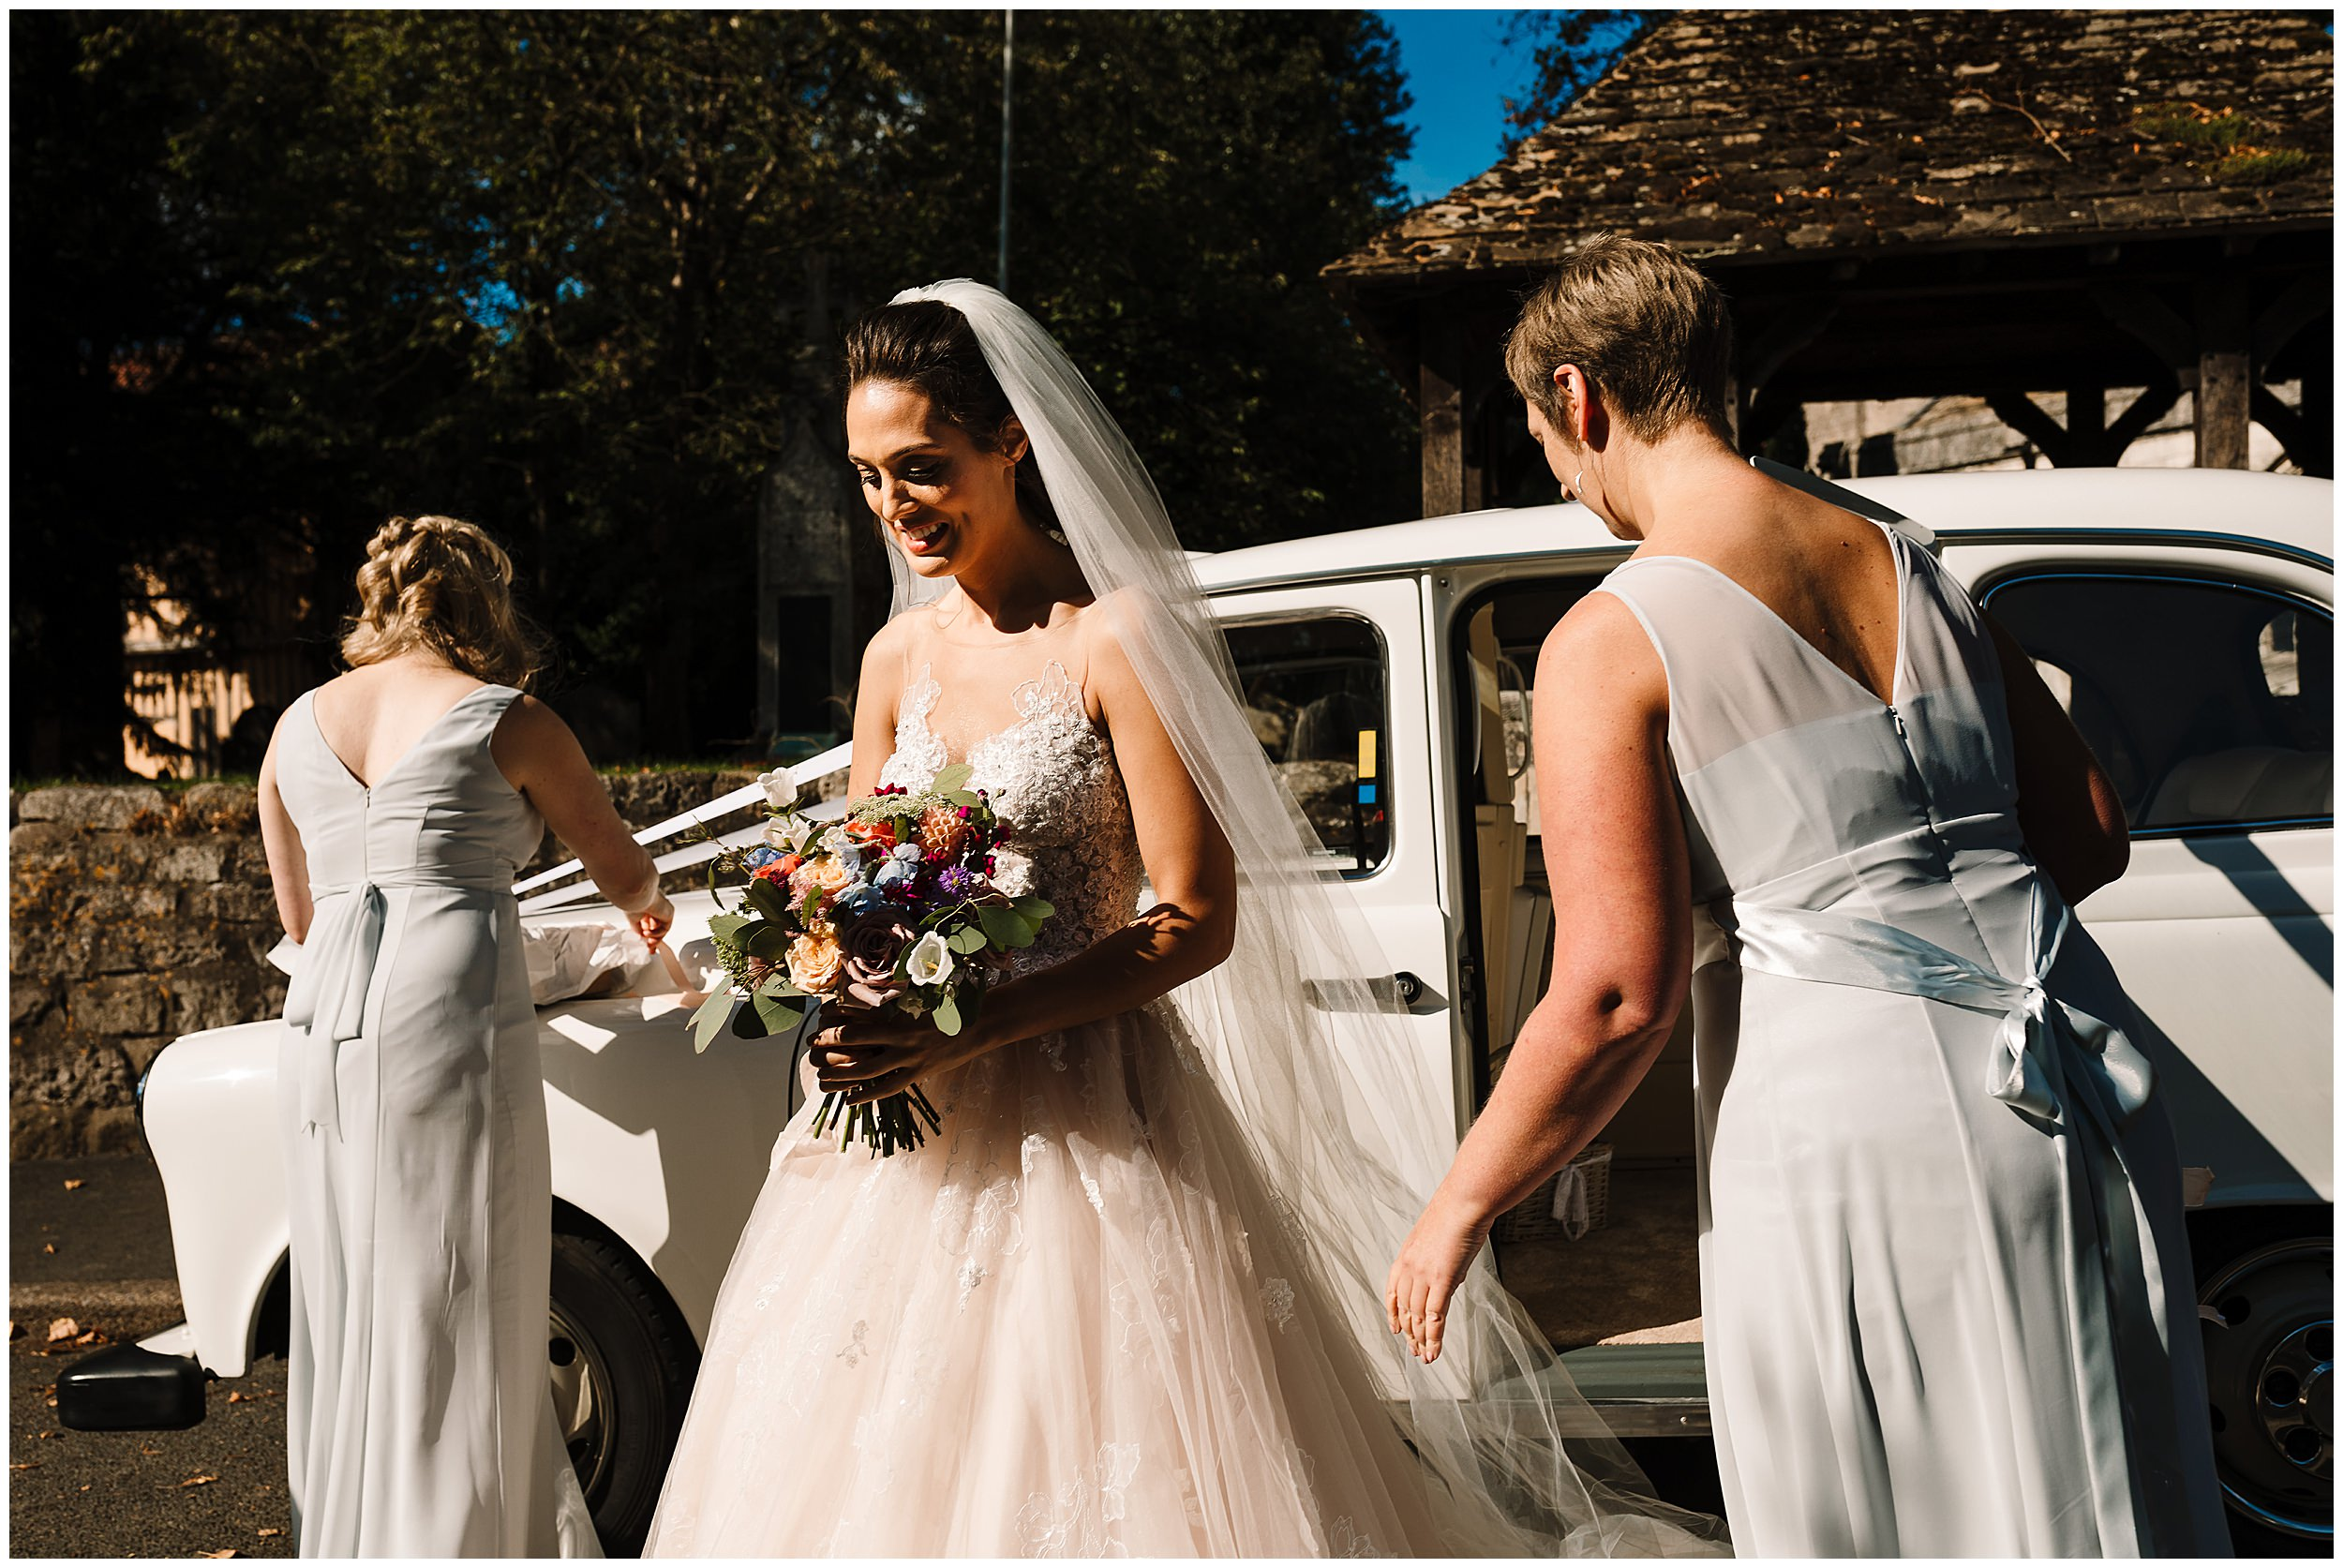 Bridesmaids helping the bride get out of the car